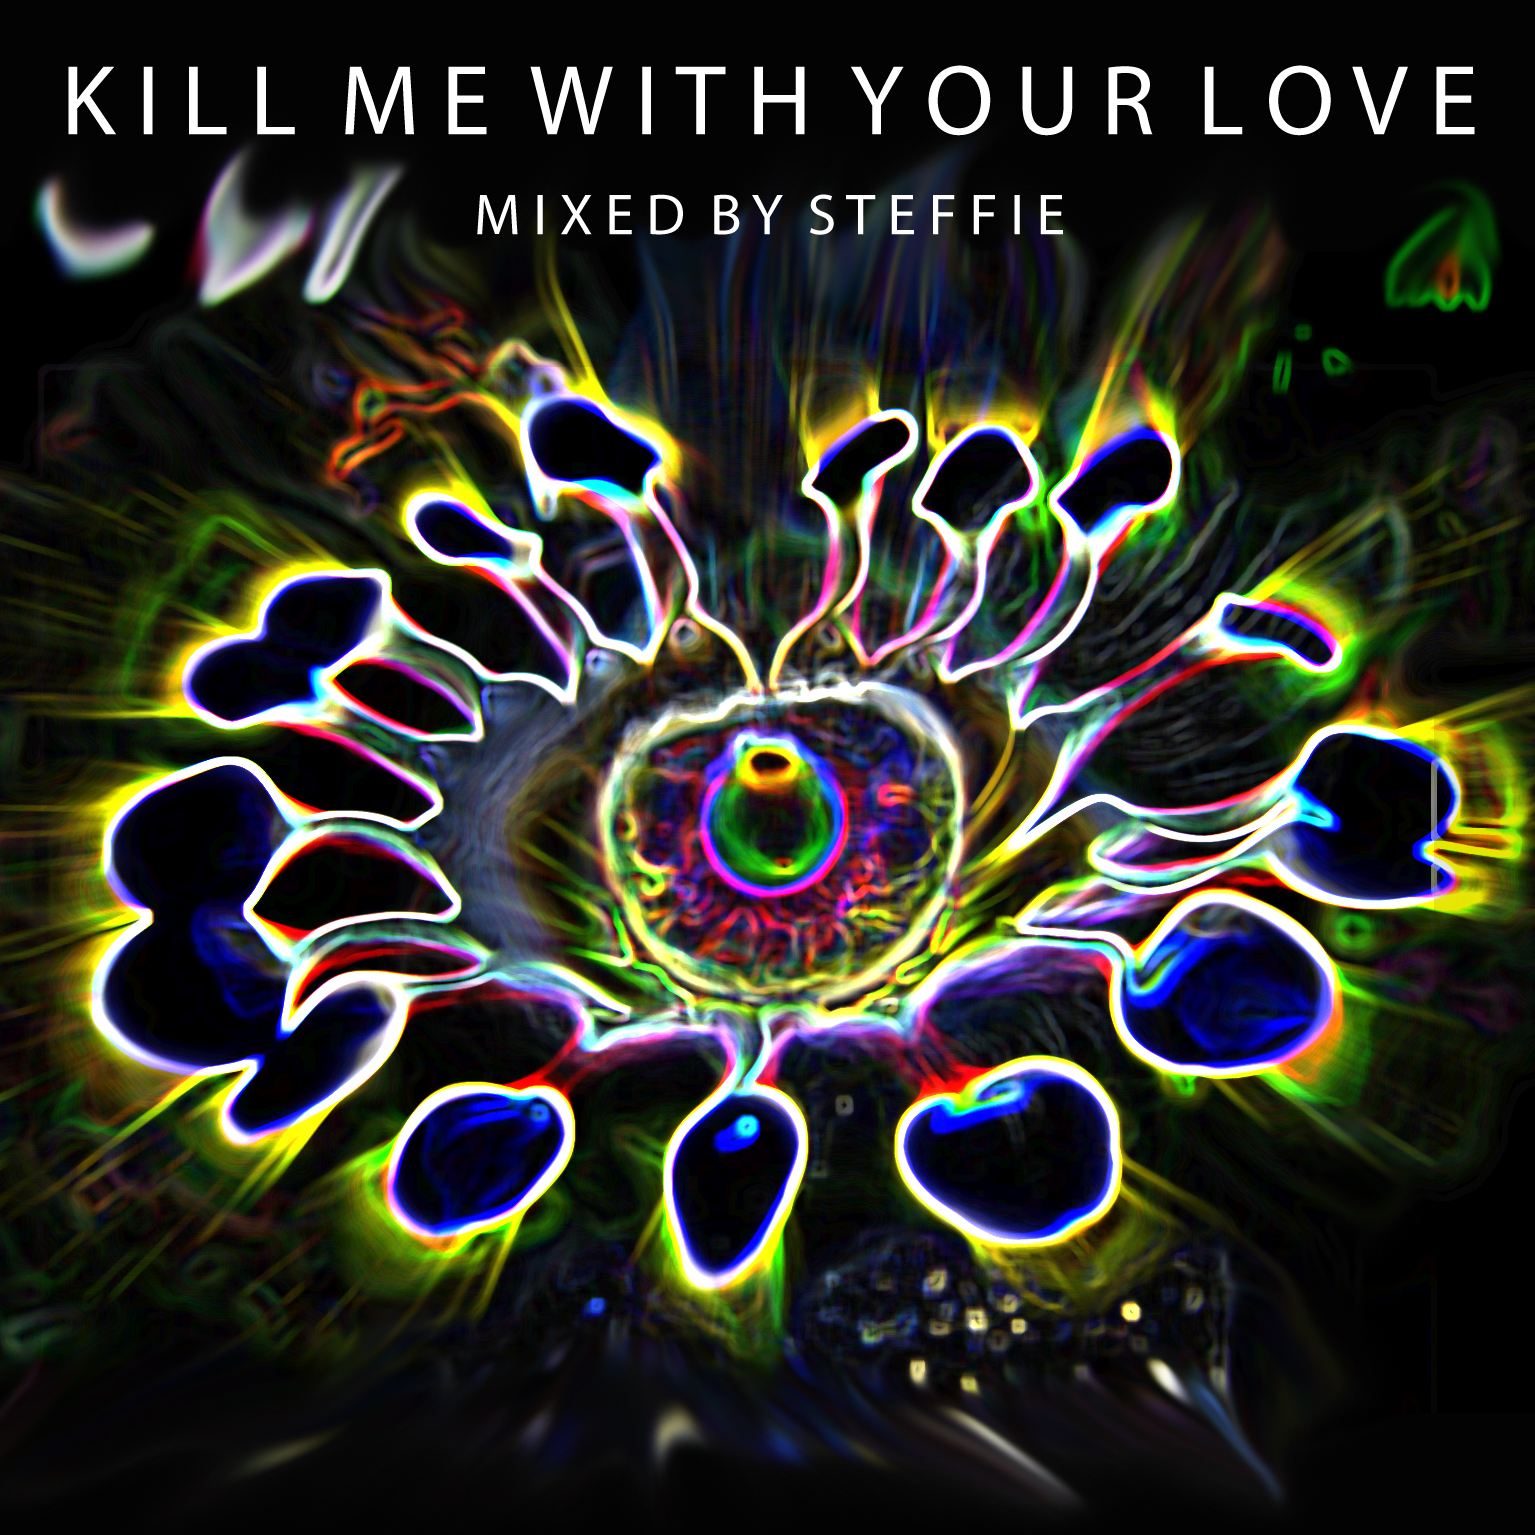 KILL ME WITH YOUR LOVE – Mixed By Steffie